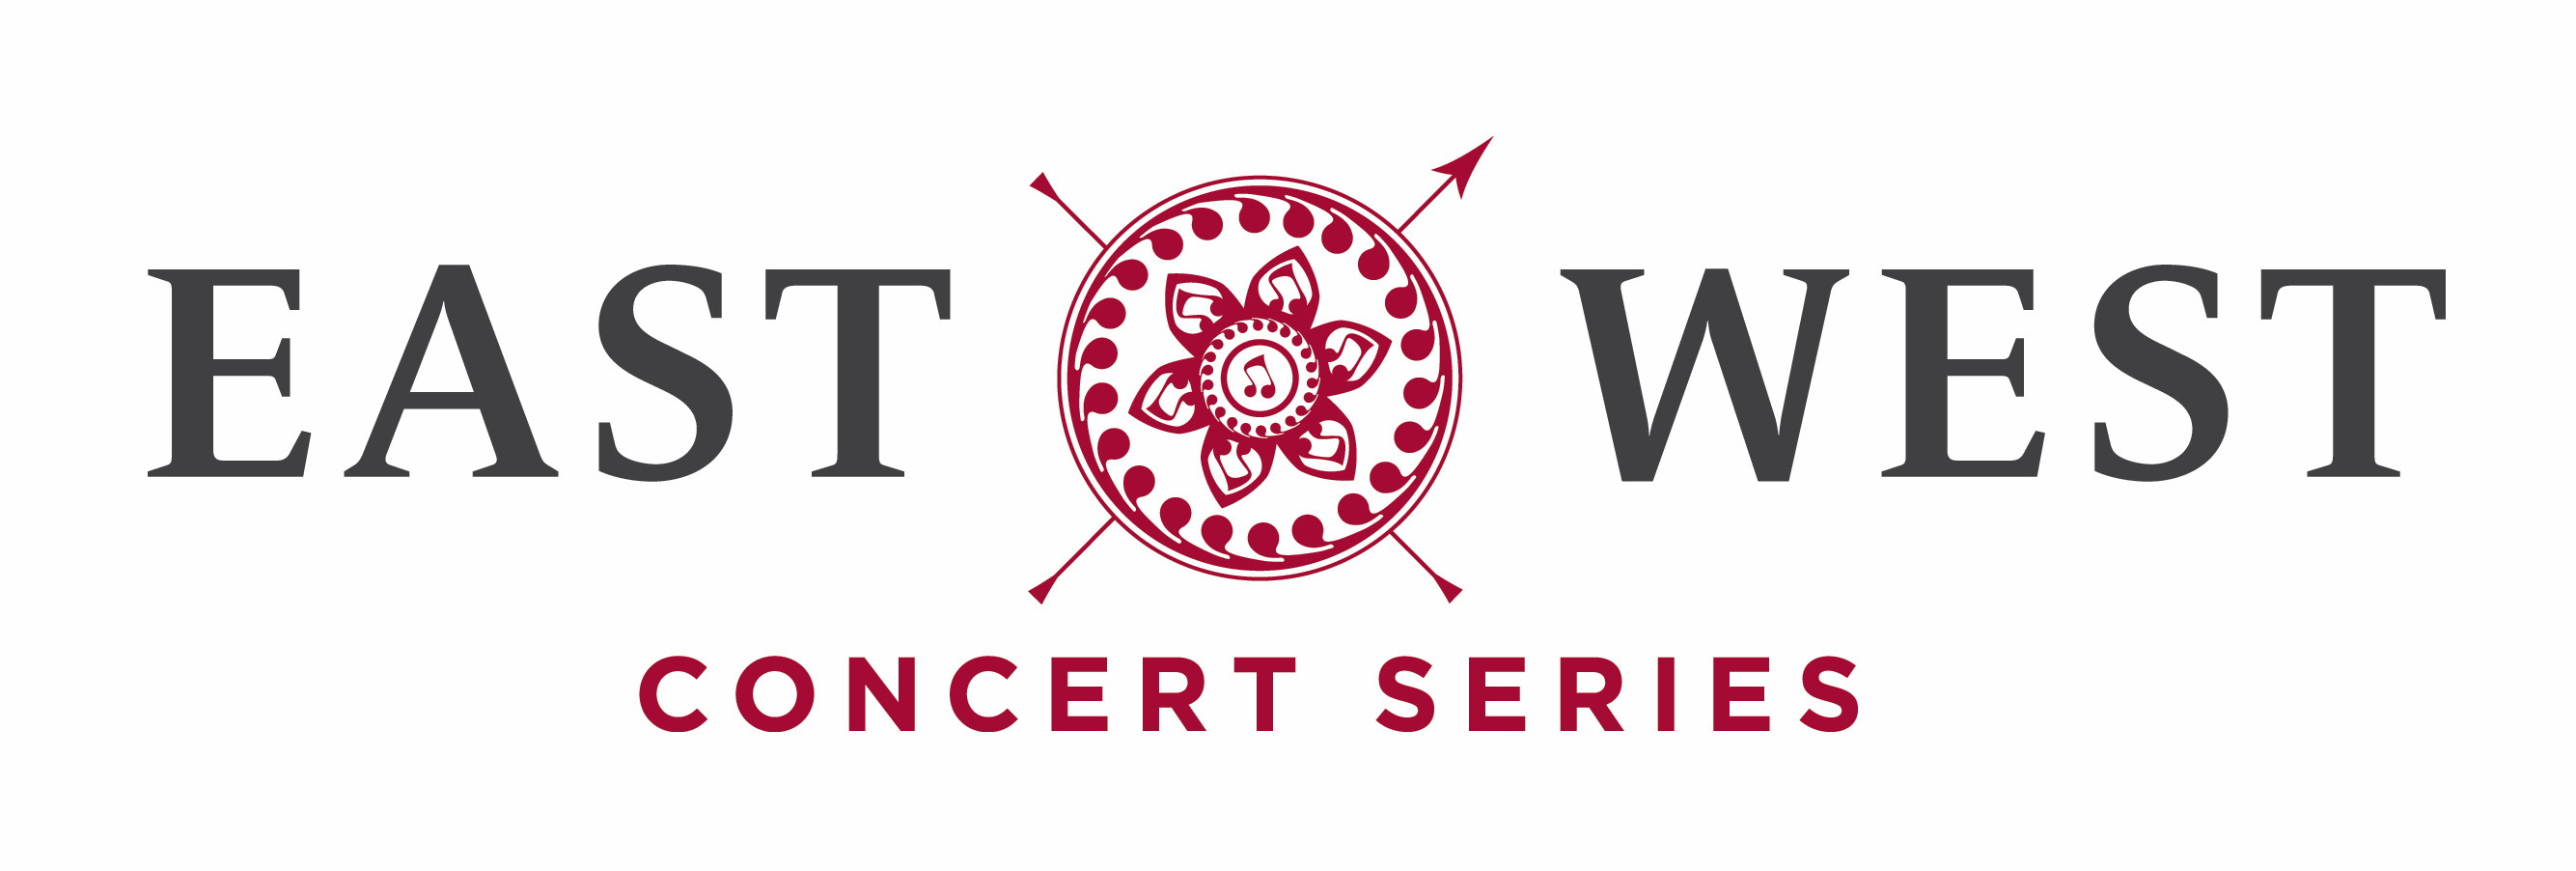 East West Concert Series Logo